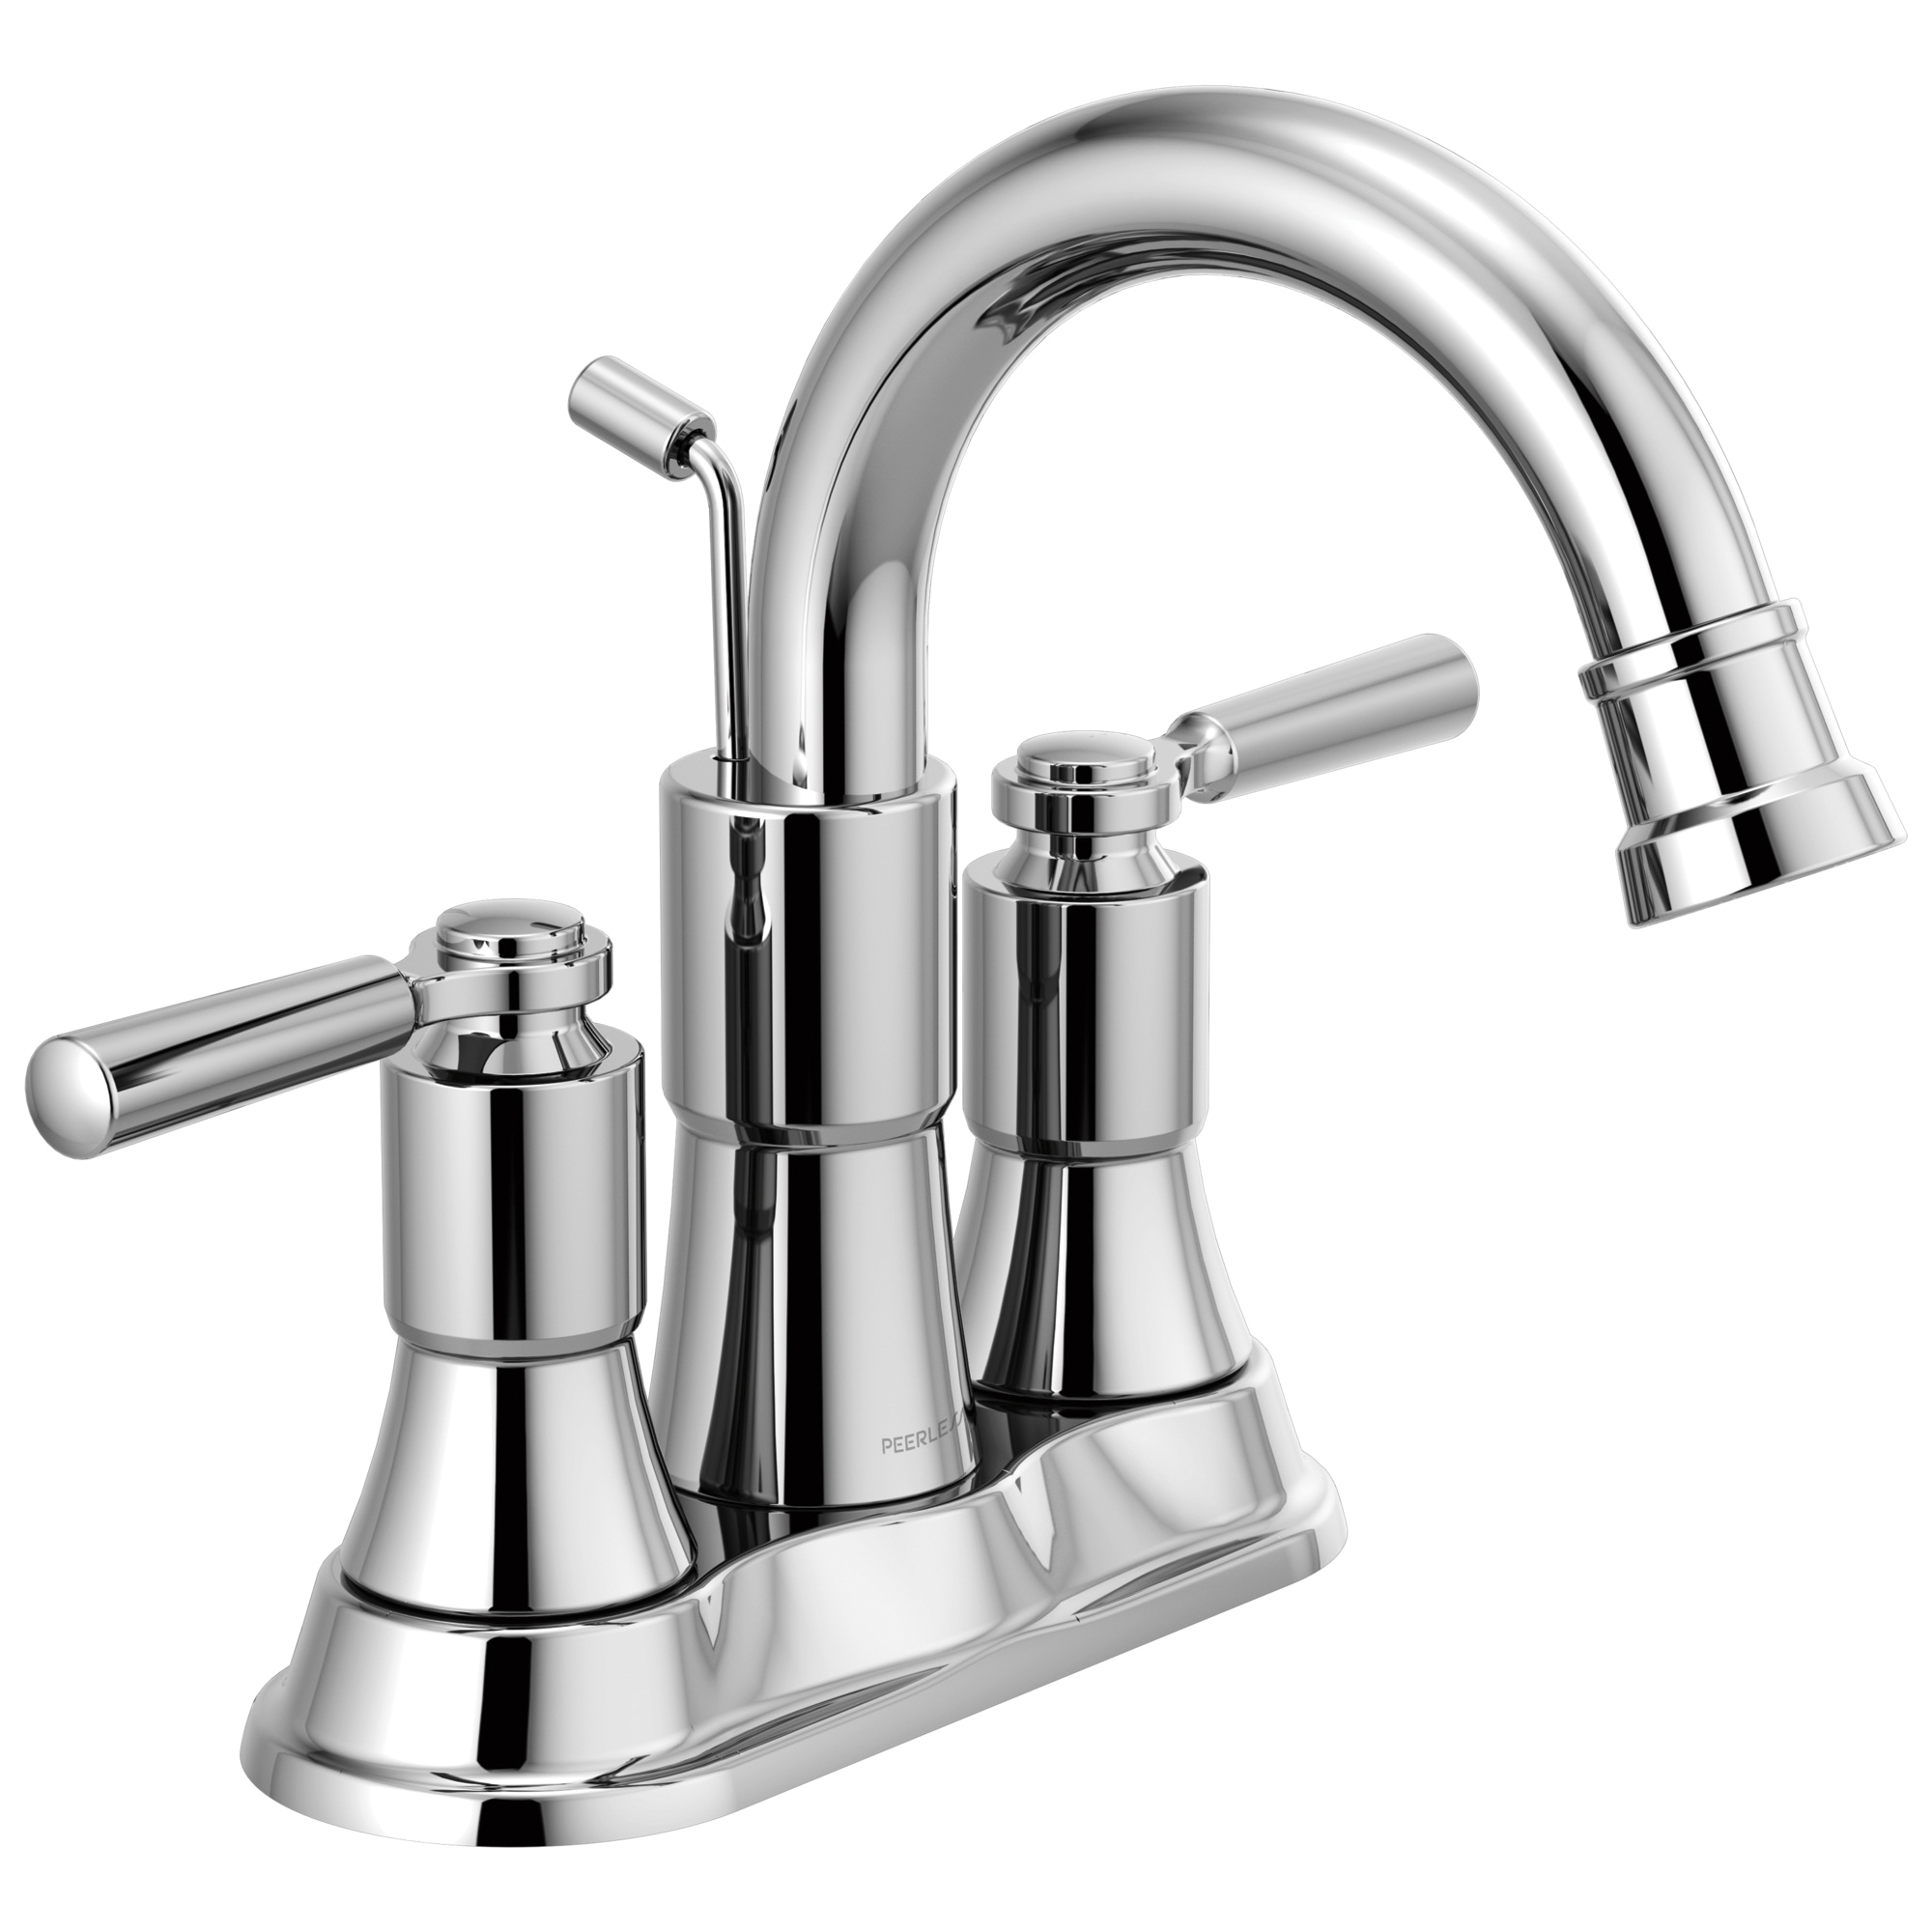 Peerless® P2523LF Centerset Bathroom Faucet, Westchester™, Chrome Plated, 2 Handles, Pop-Up Drain, 1 gpm